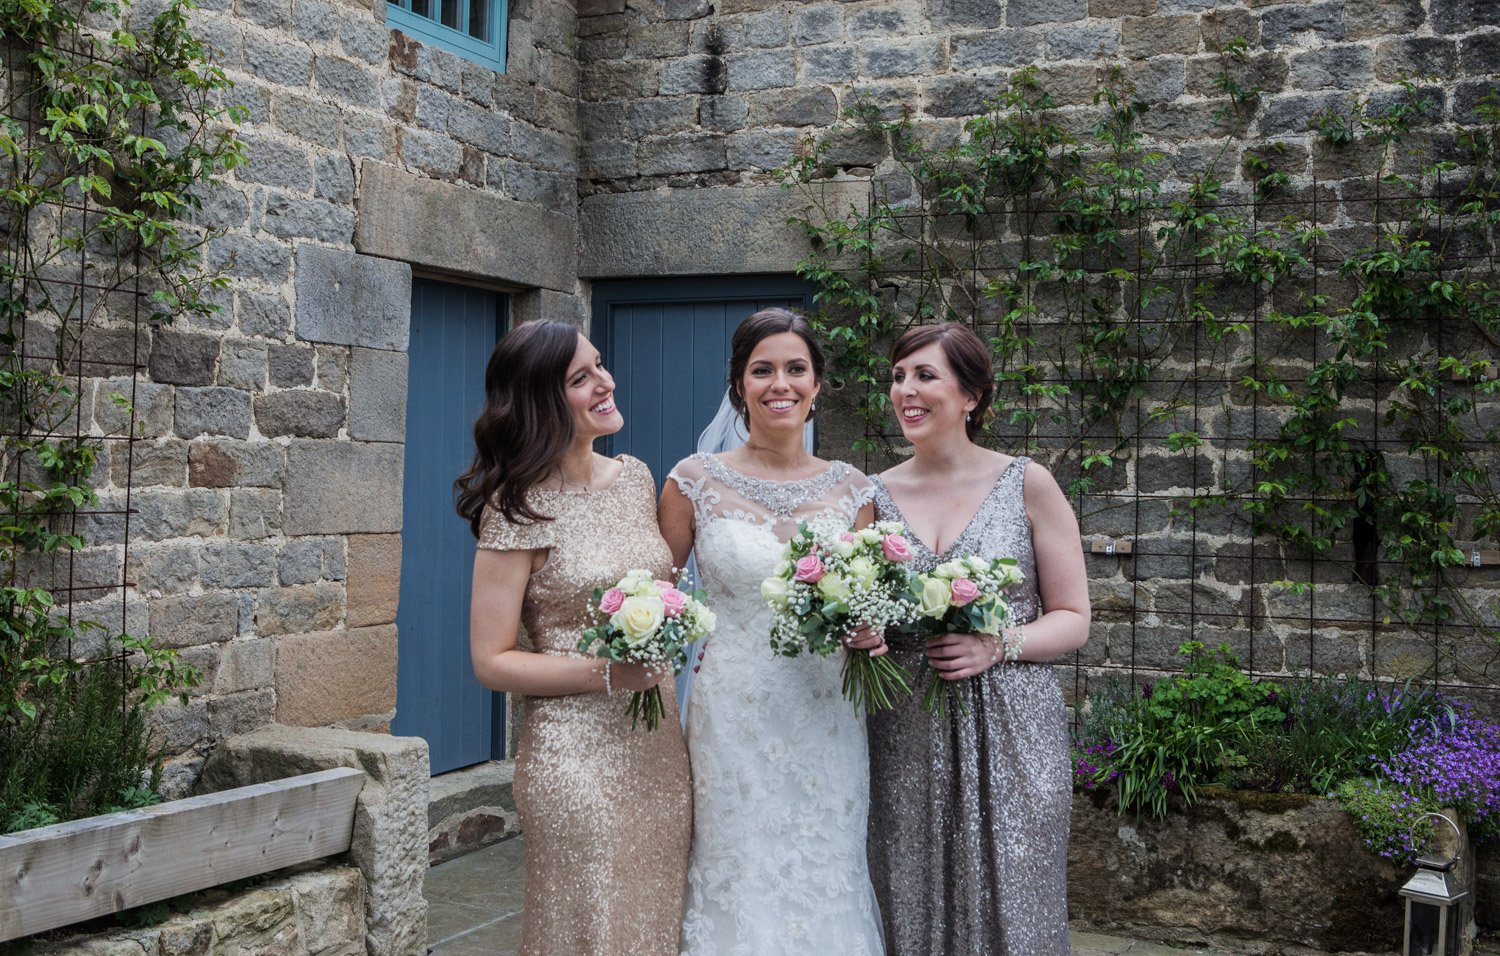 Healey Barn Wedding - Bride and bridesmaids